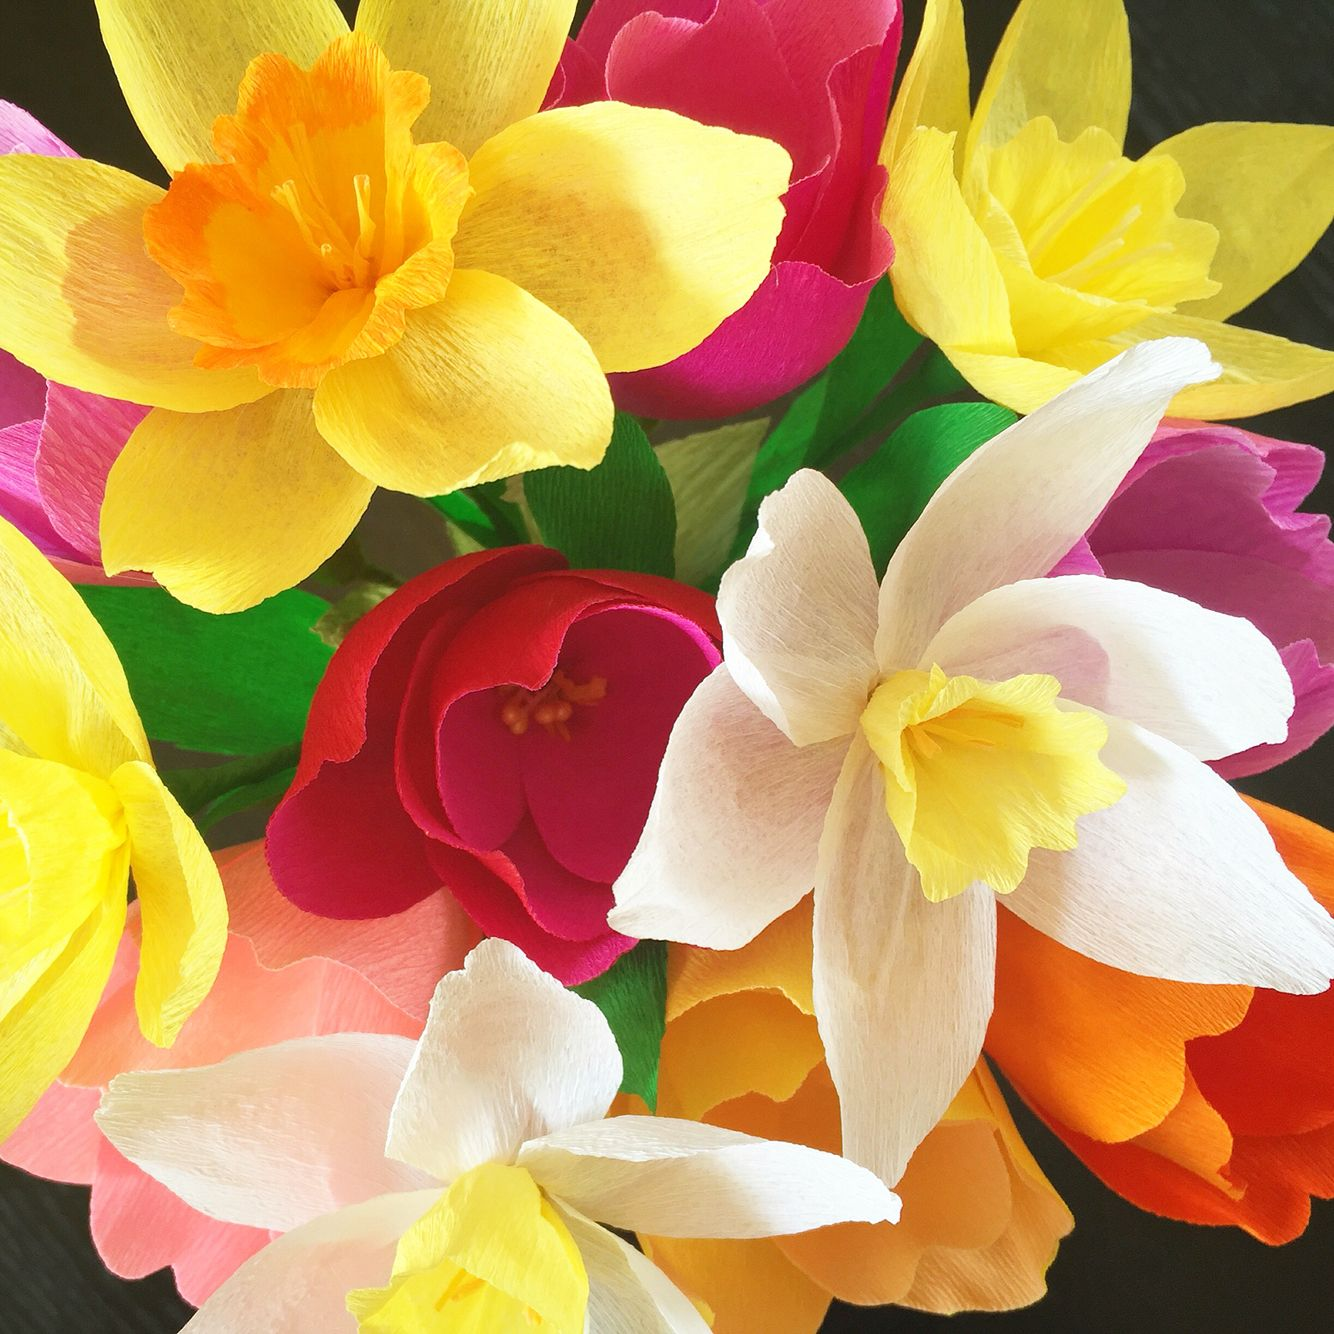 Daffodils And Tulips Made Of Italian Crepe Paper Flower Making